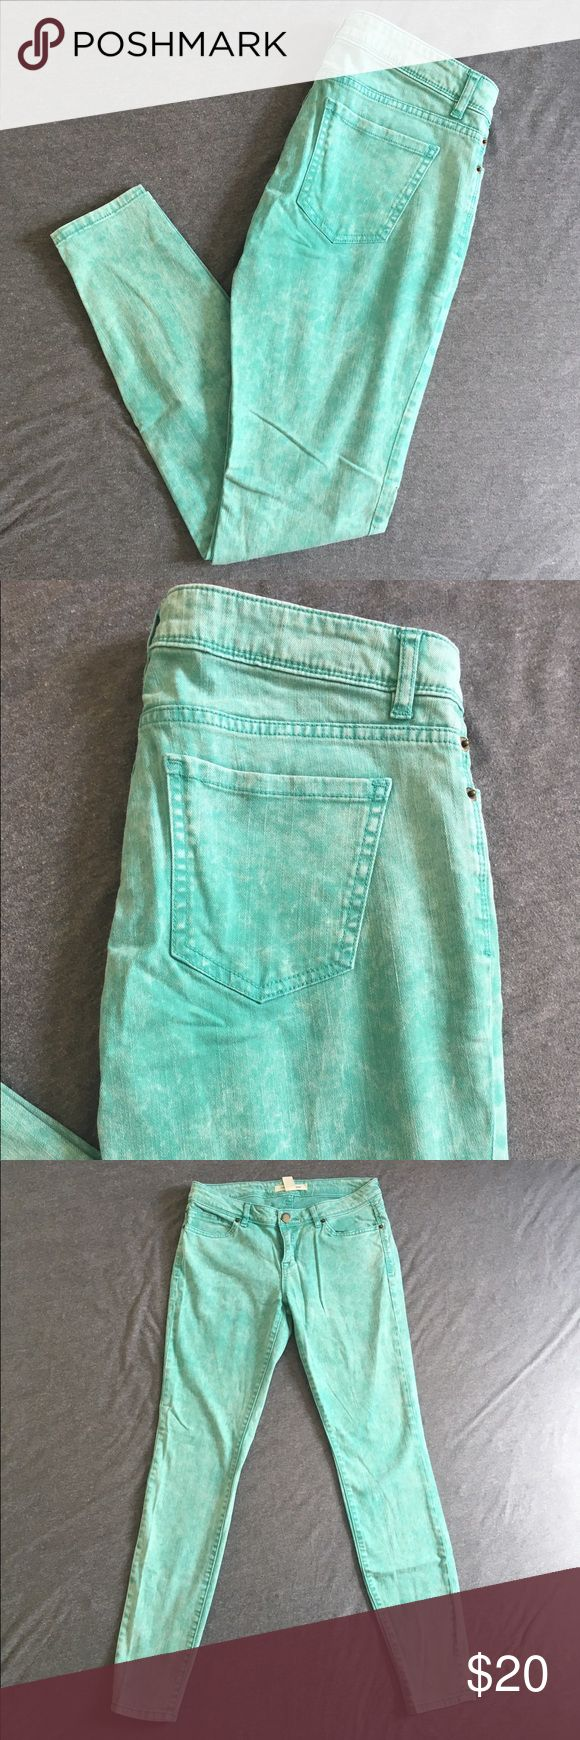 Sea foam green skinny jeans In great condition! Great for summer fun! PacSun Jeans Skinny